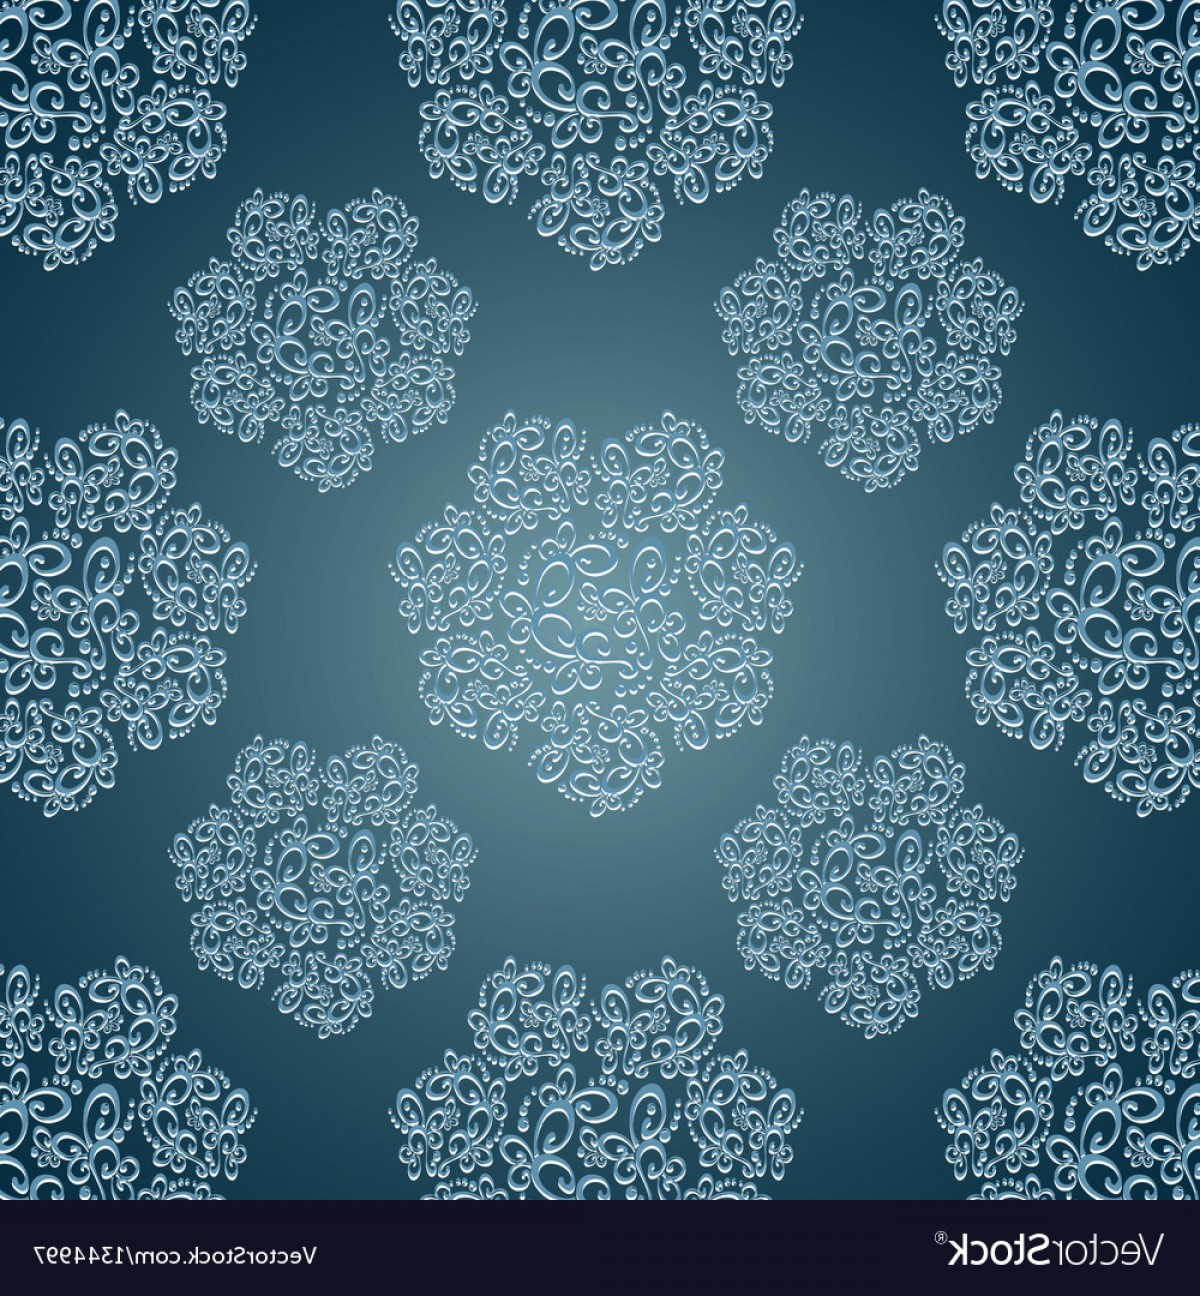 Aqua Victorian Vectors: Seamless Patterns With Lace Flowers In Victorian Vector